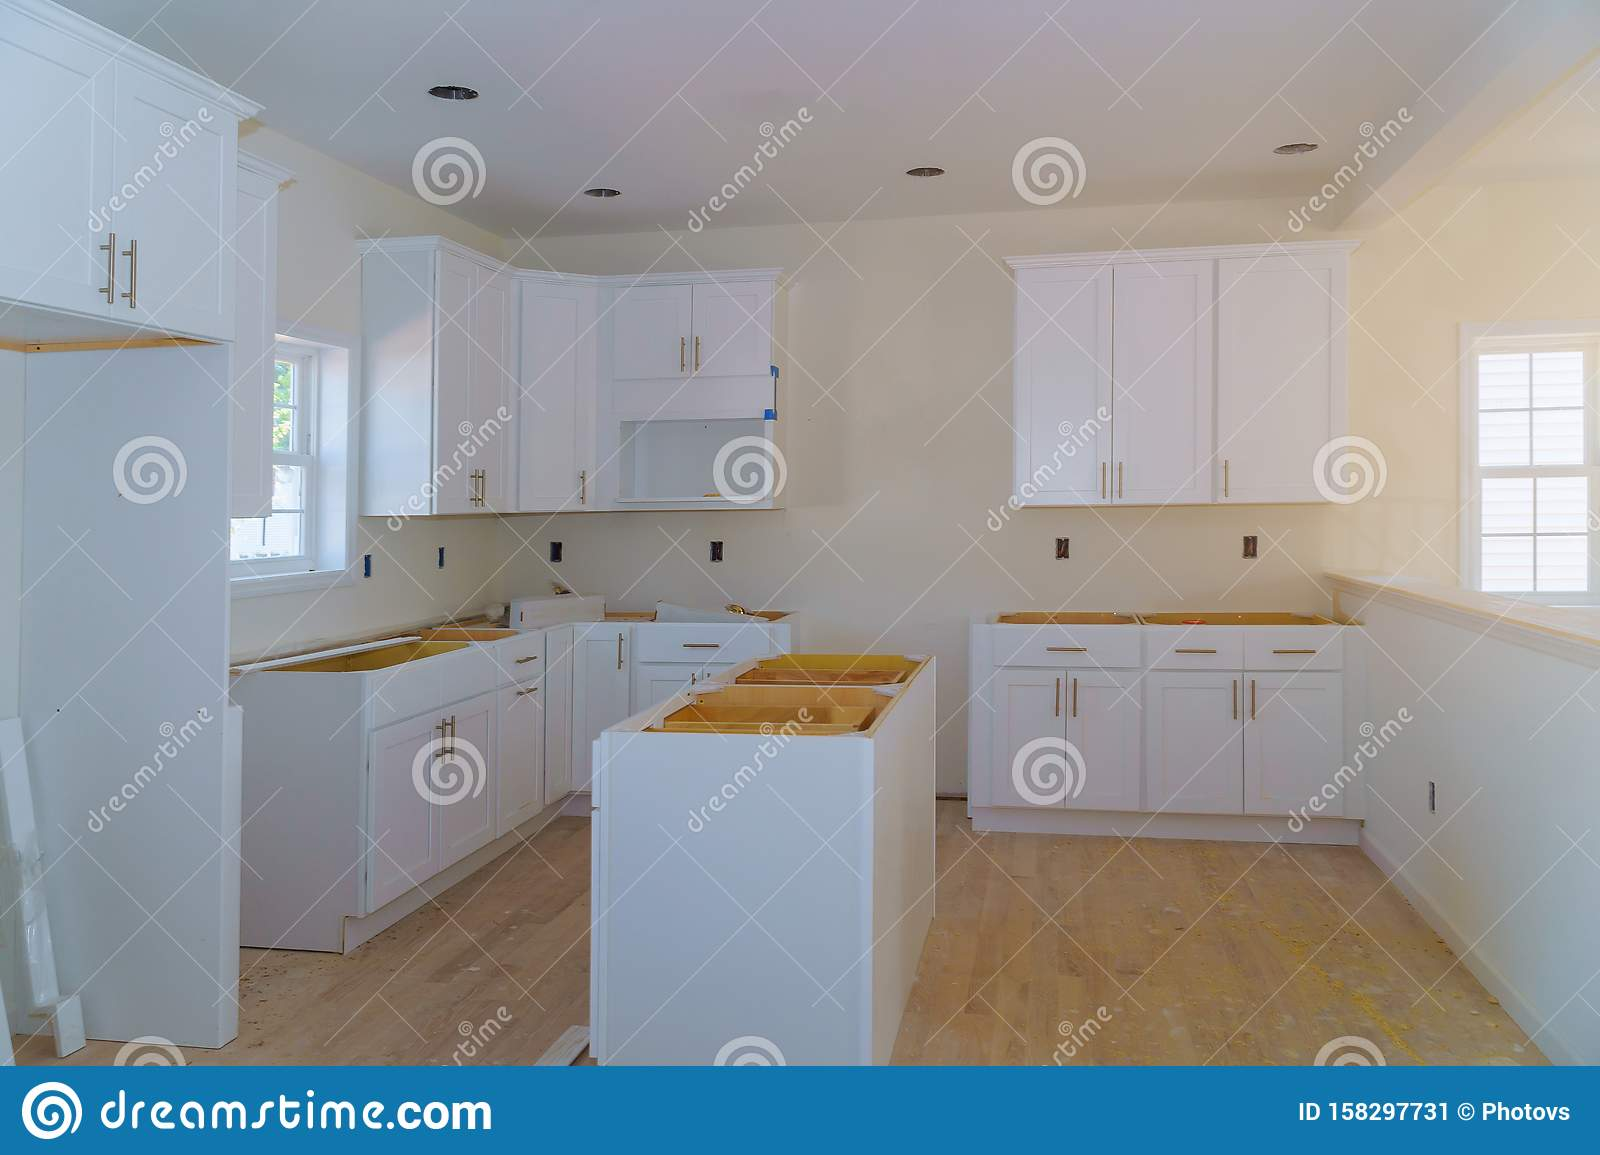 Custom Kitchen Cabinets In Various Stages Of Installation Base For Island In Center Stock Image Image Of Room Remodeling 158297731